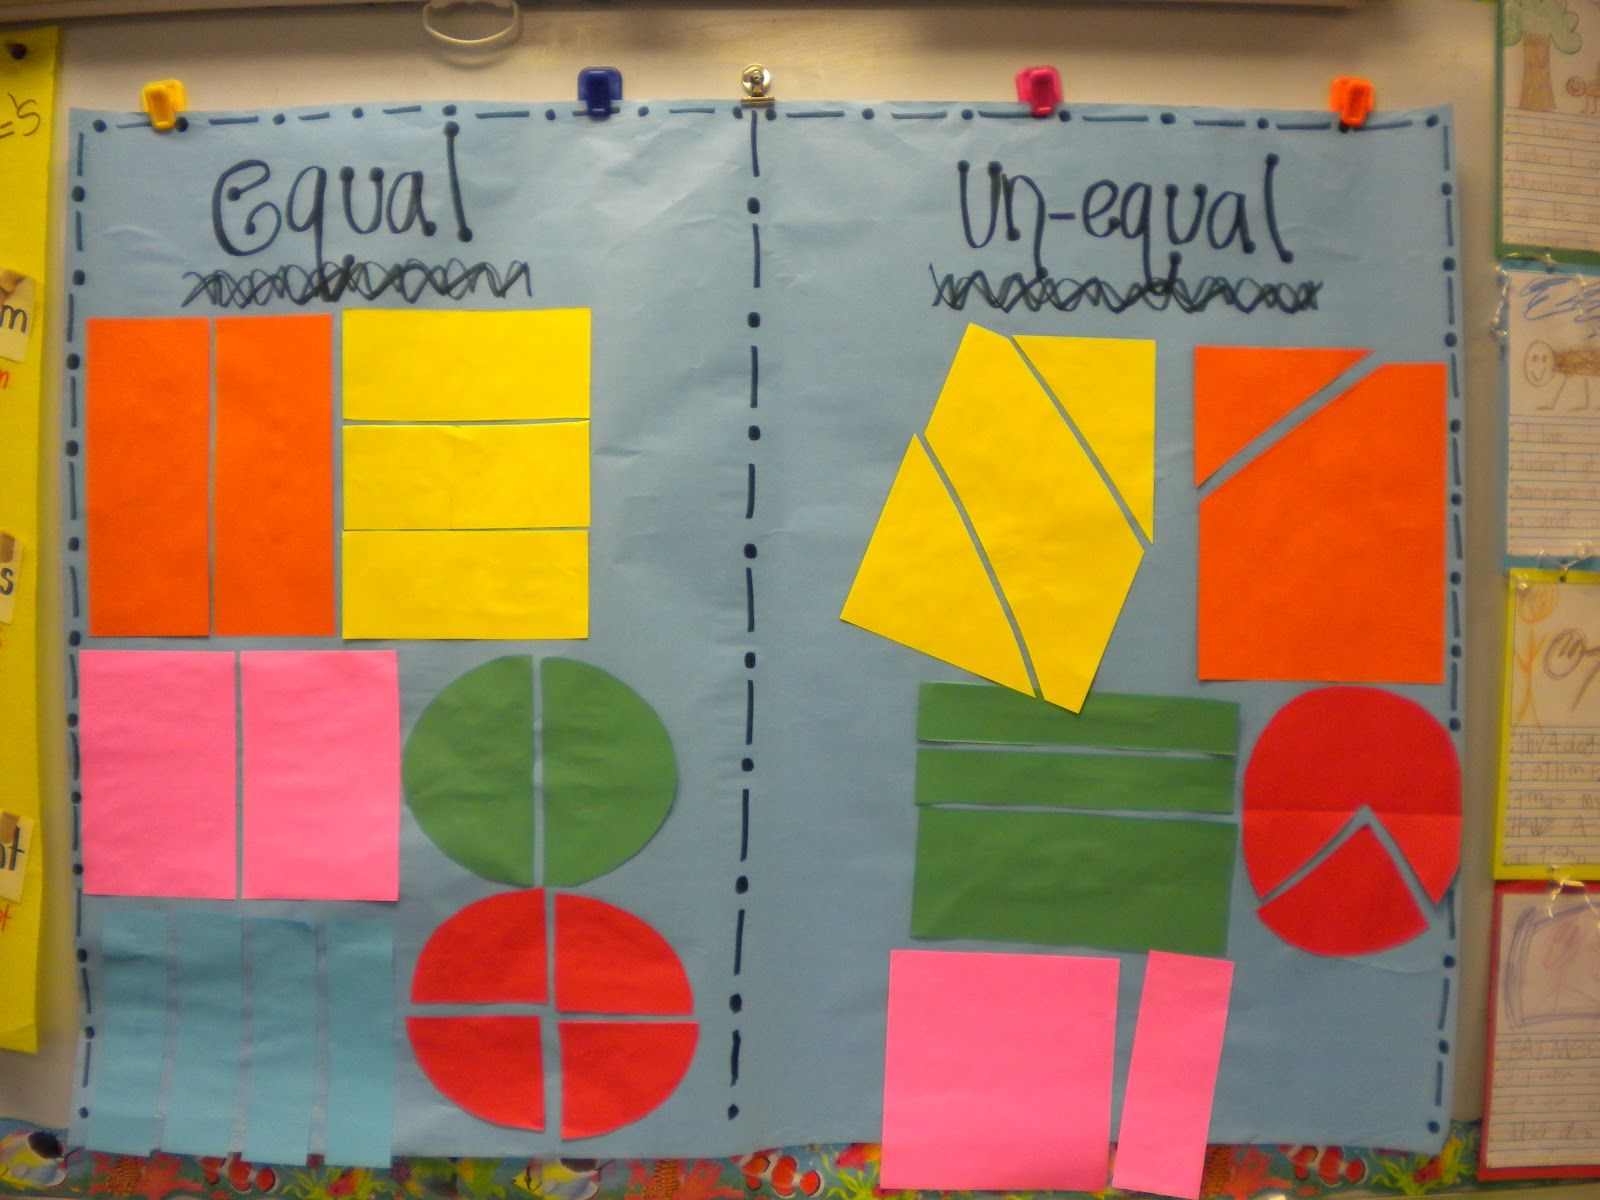 Students Work With Unequally Partitioned Shapes In This